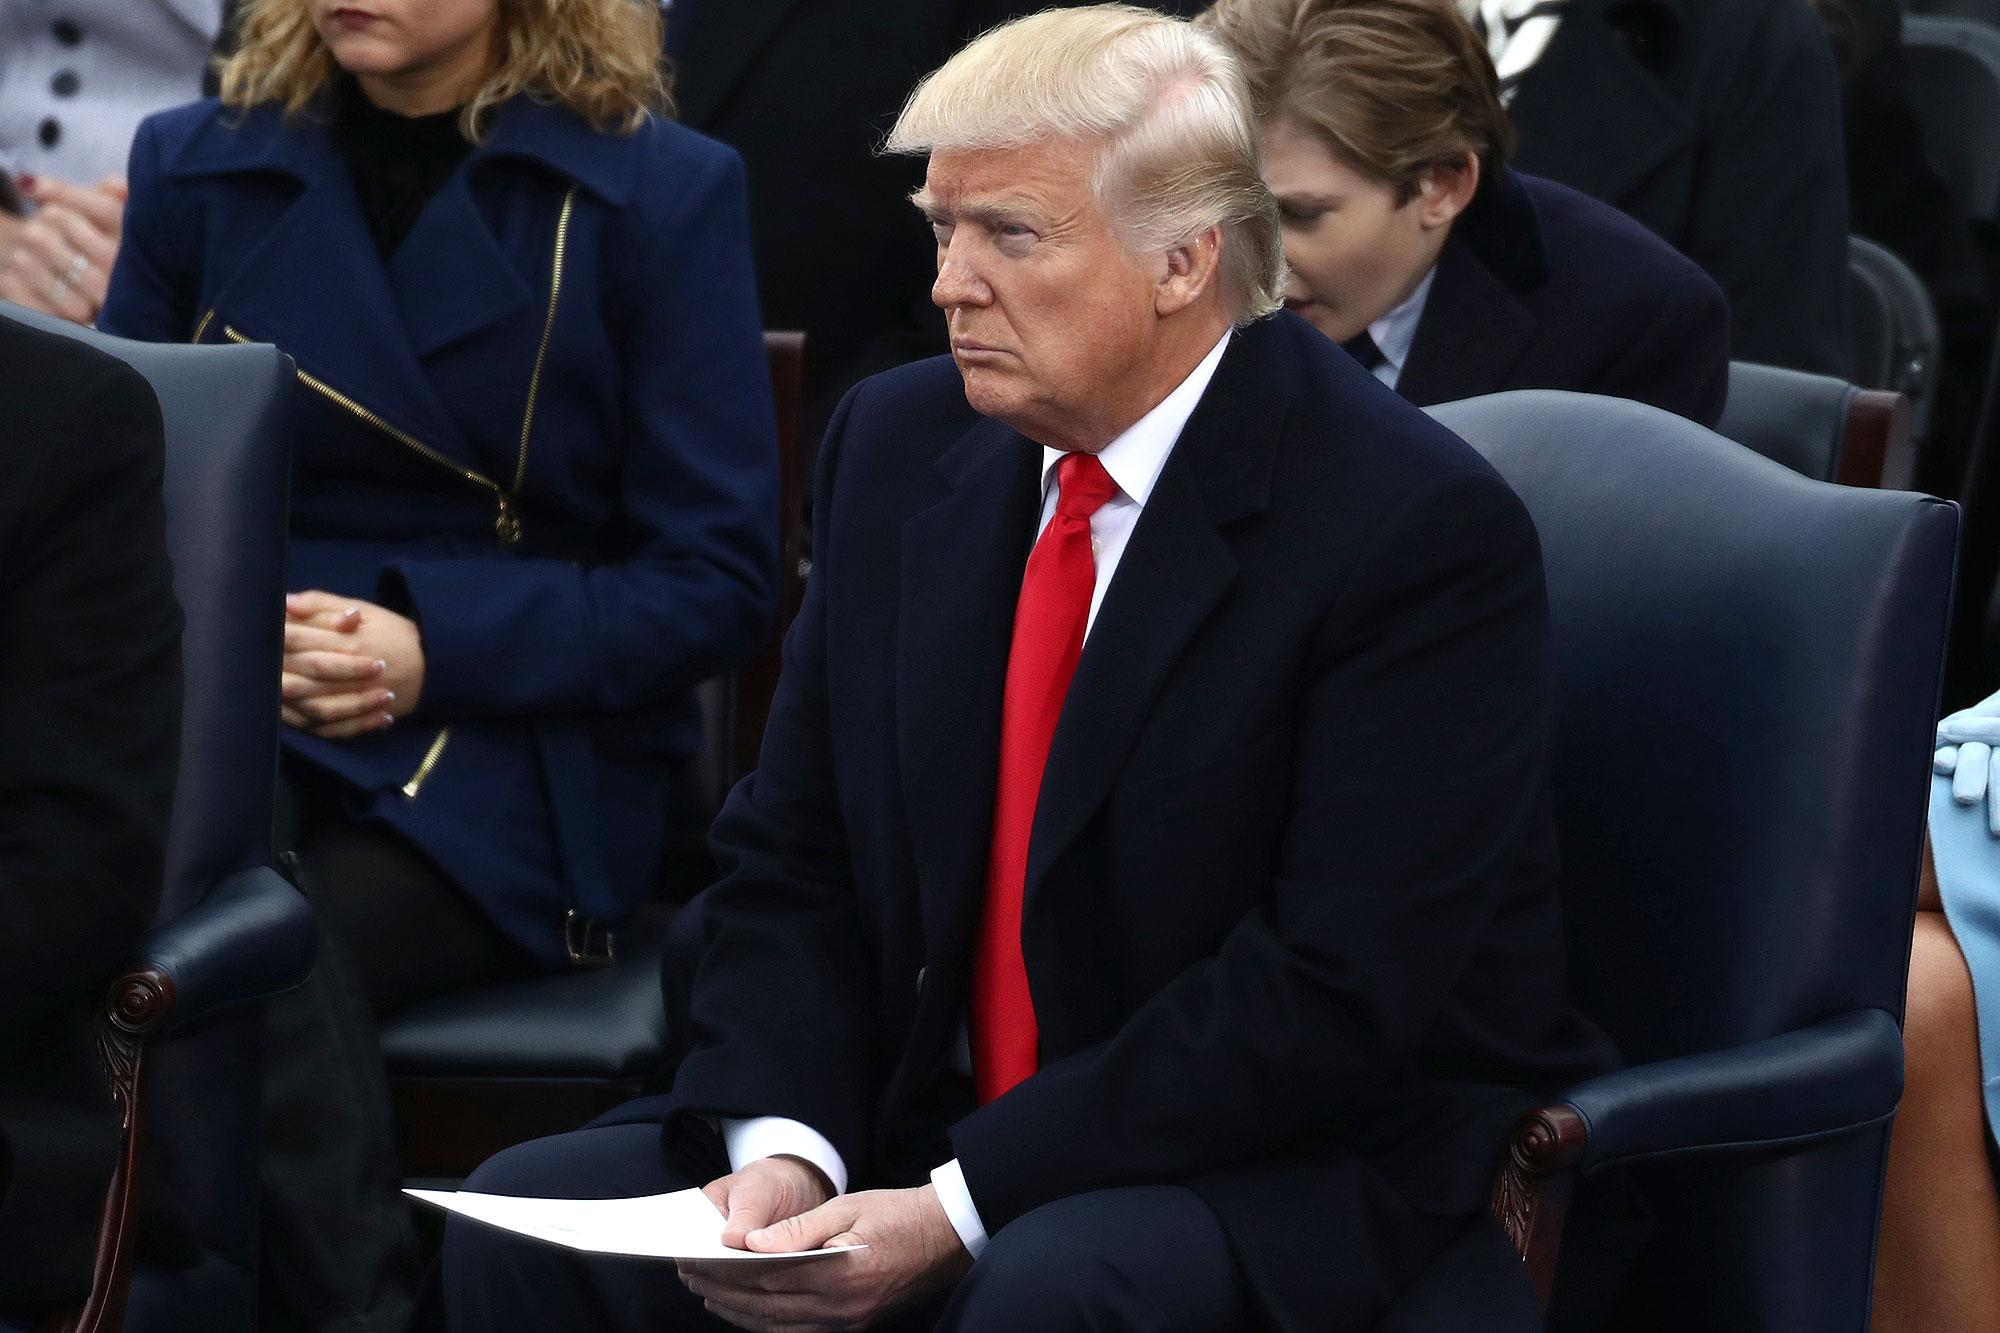 President Trump Smashes Record for Getting Majority of Americans to Disapprove of Him